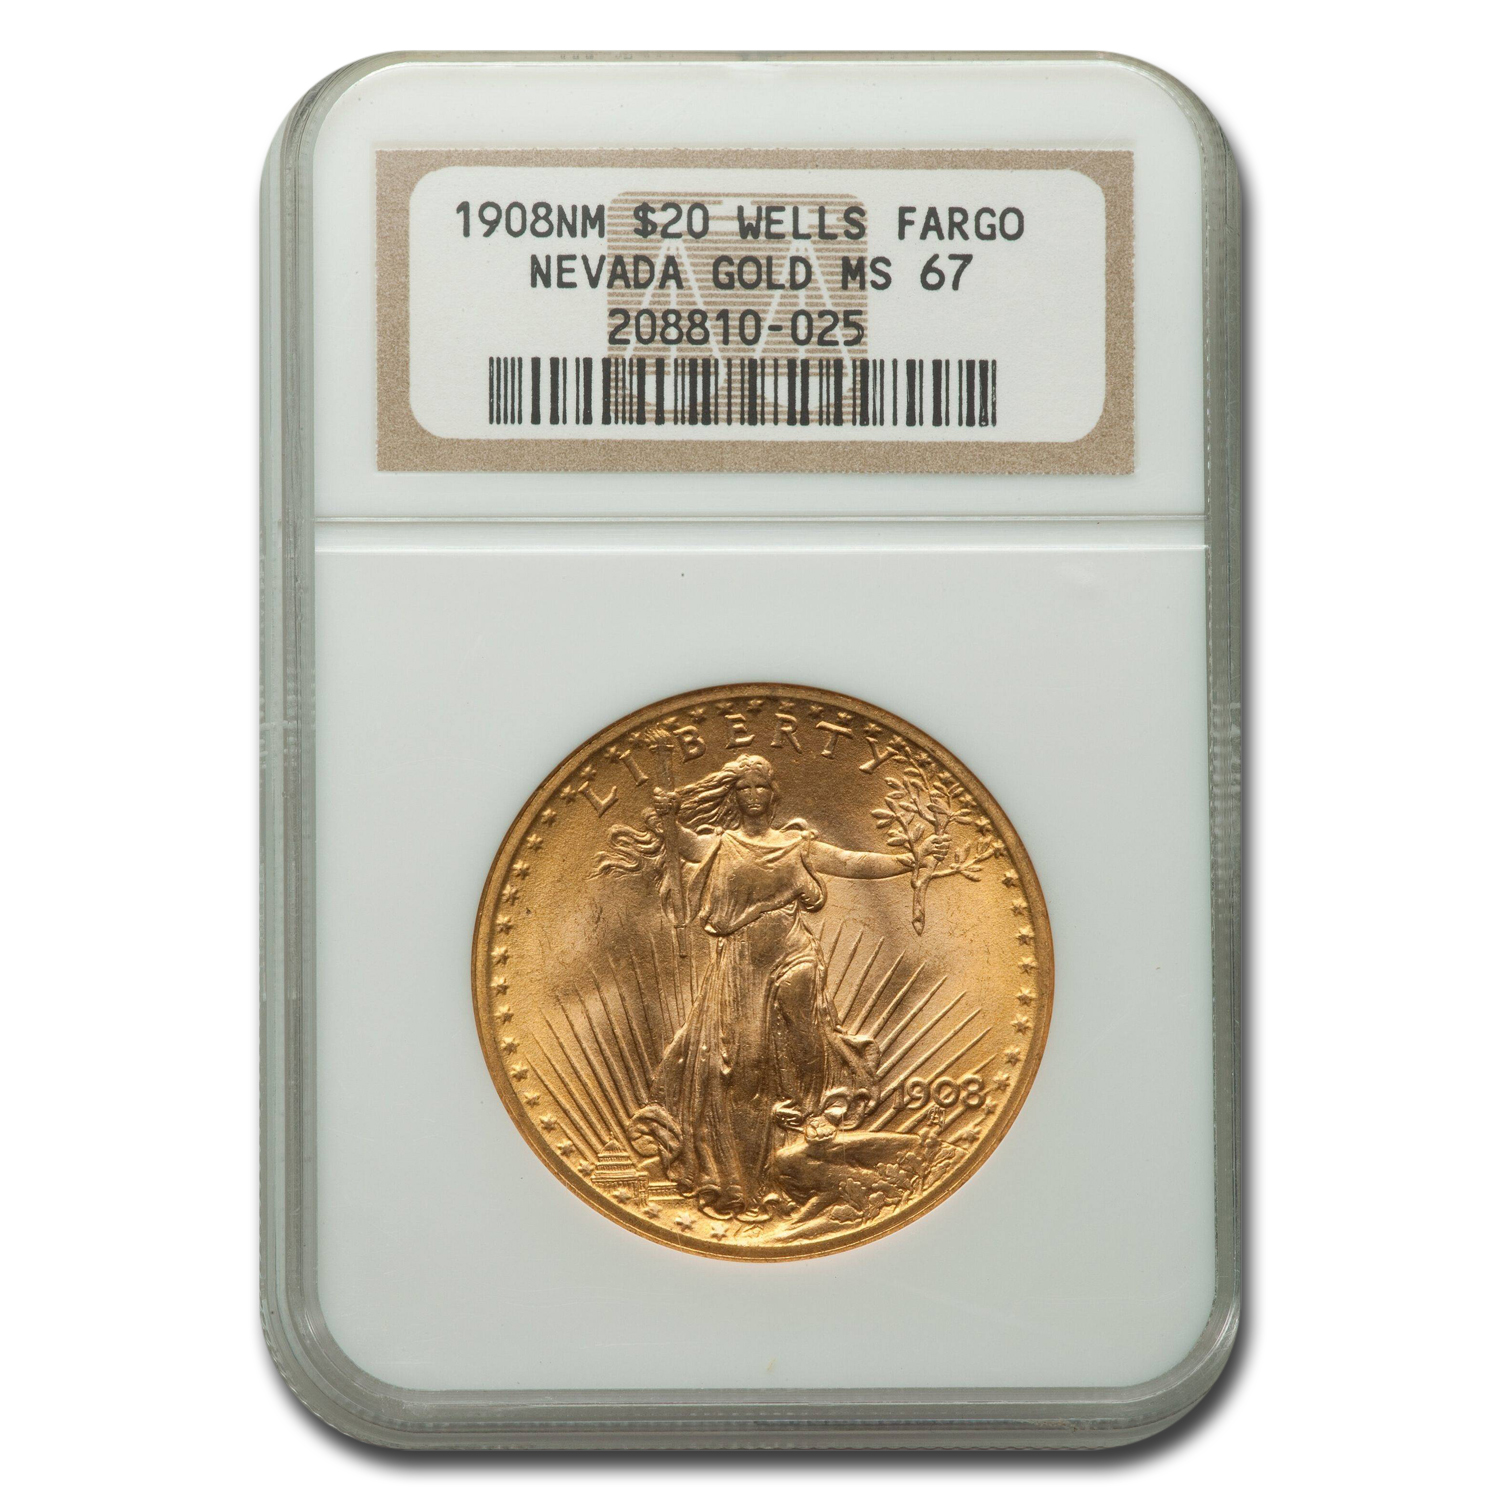 1908 $20 St. Gaudens Gold - No Motto - MS-67 NGC (Wells Fargo)